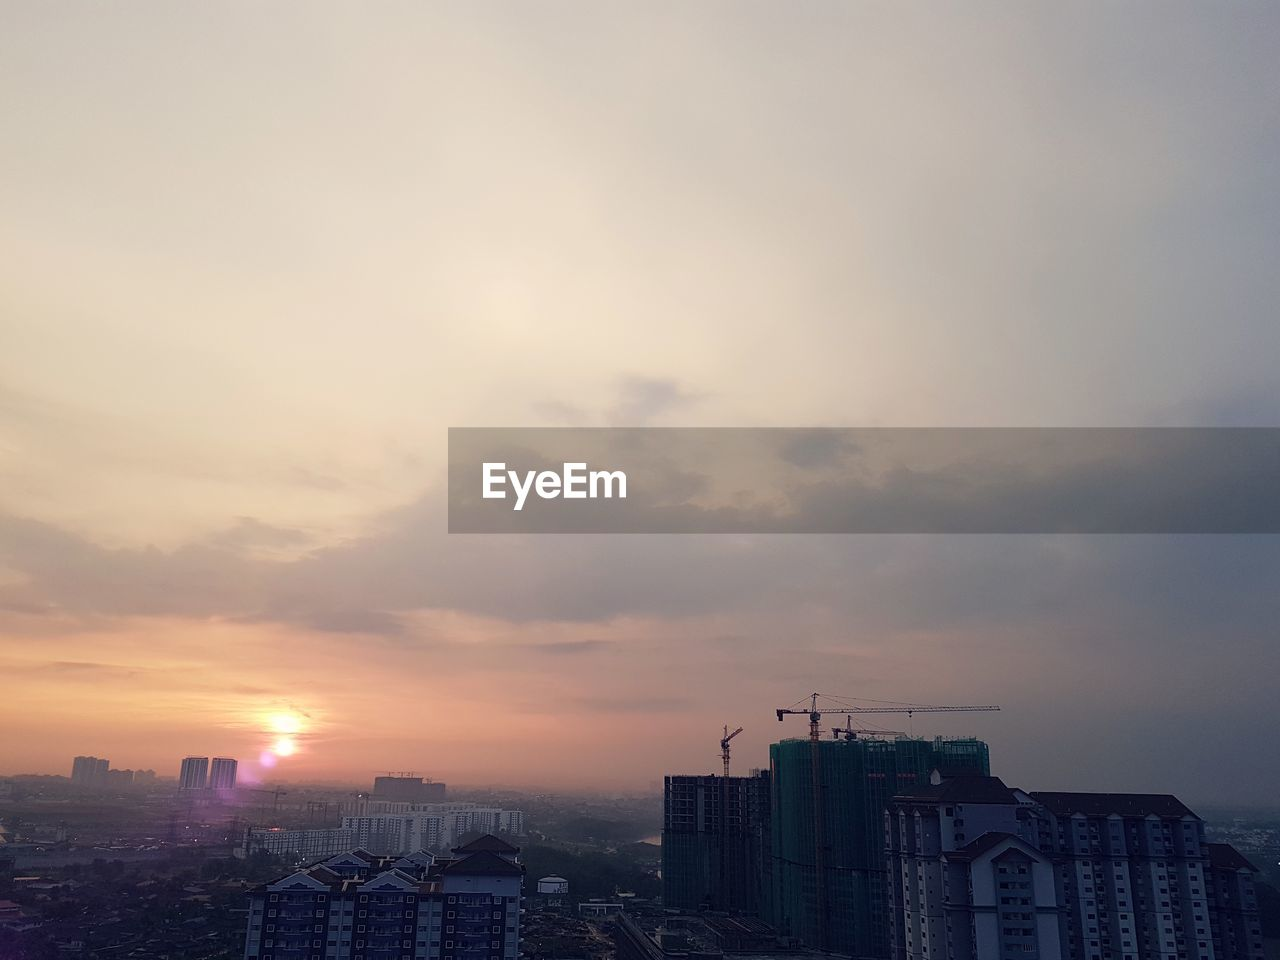 architecture, building exterior, cityscape, city, built structure, sunset, skyscraper, modern, sky, no people, outdoors, urban skyline, residential, day